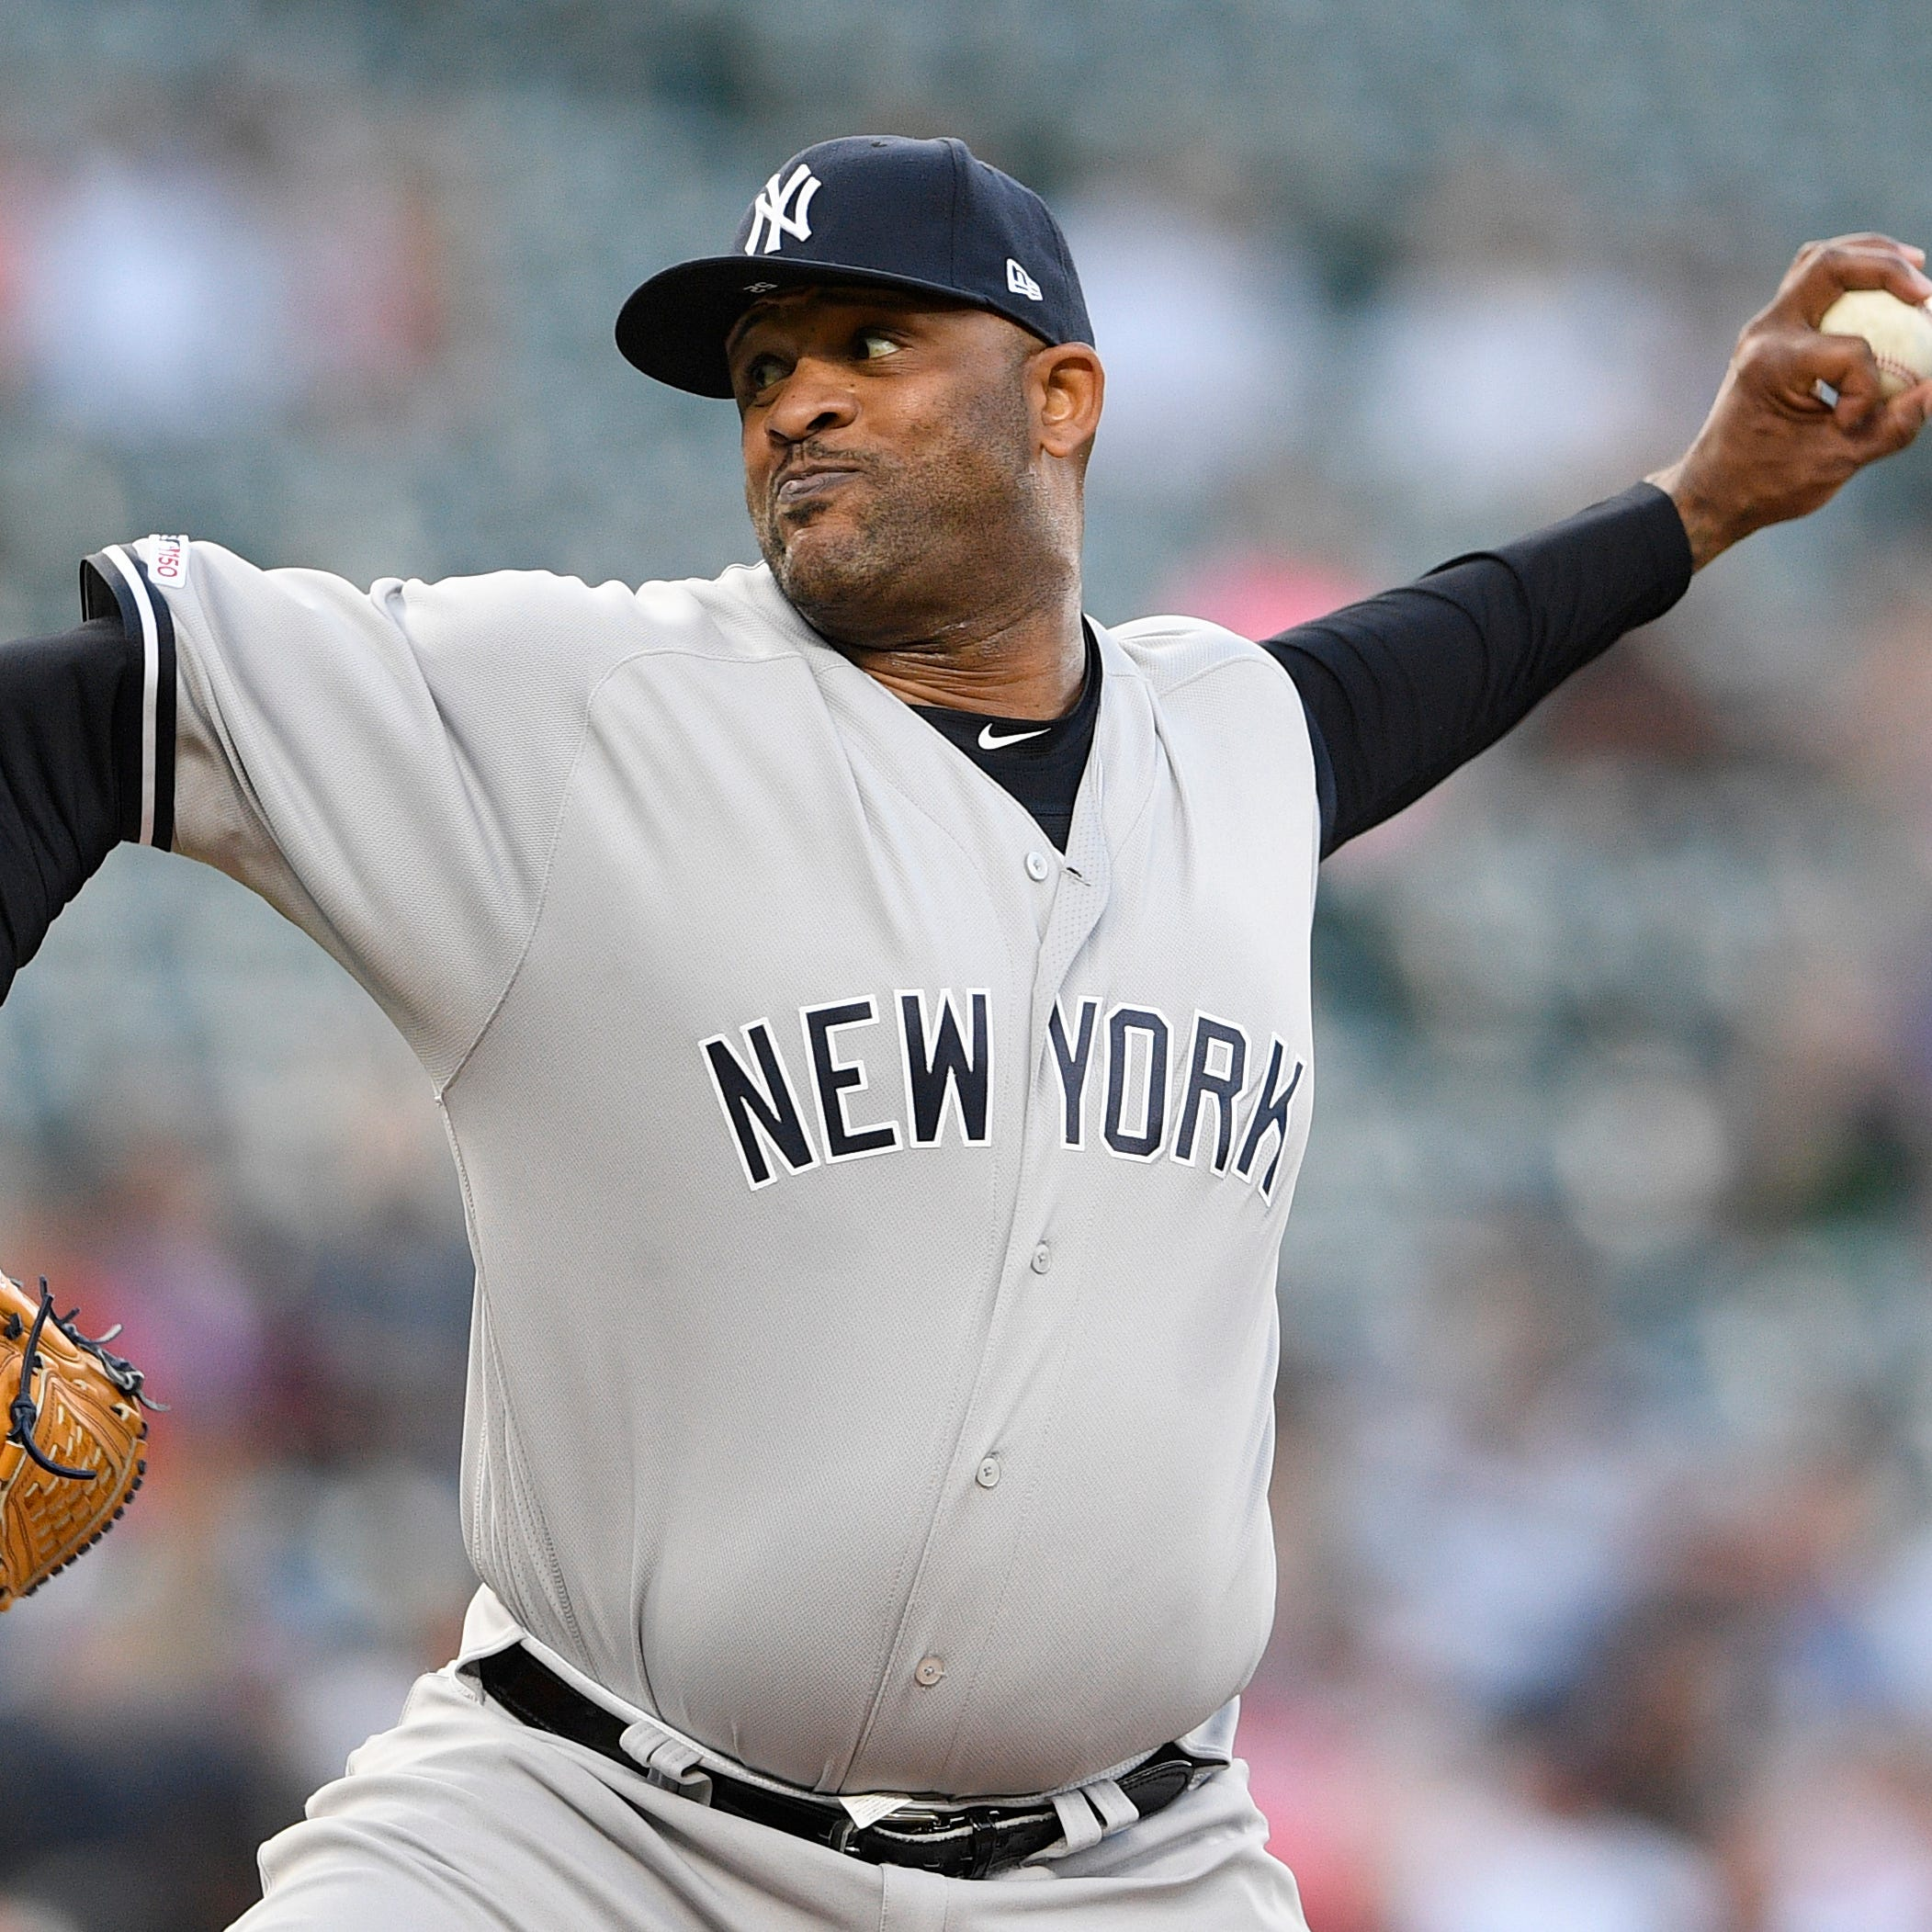 New York Yankees' CC Sabathia placed on 10-day IL due to ailing knee